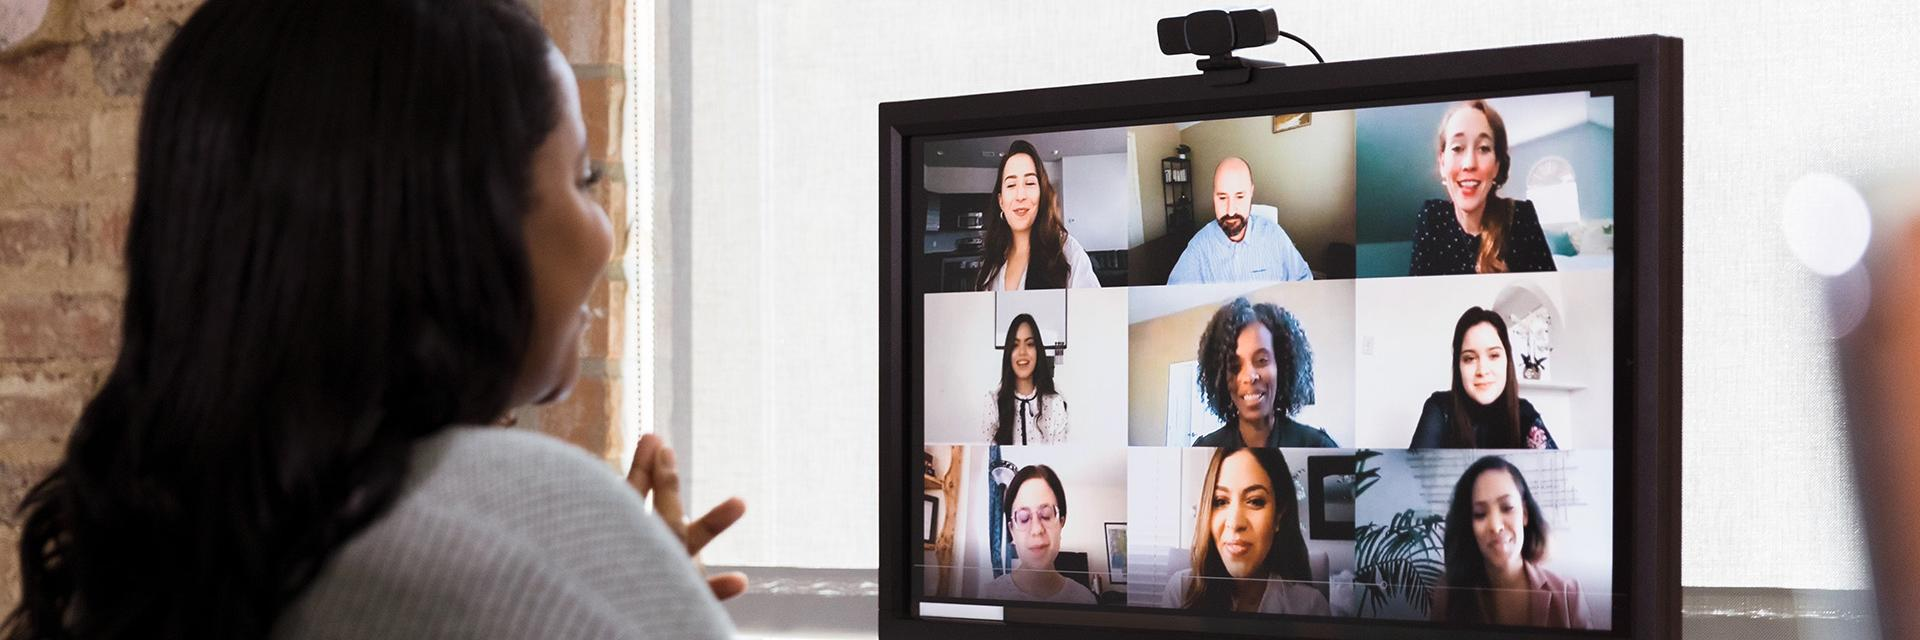 A multi-ethnic team of co-workers meet together via video conferencing.